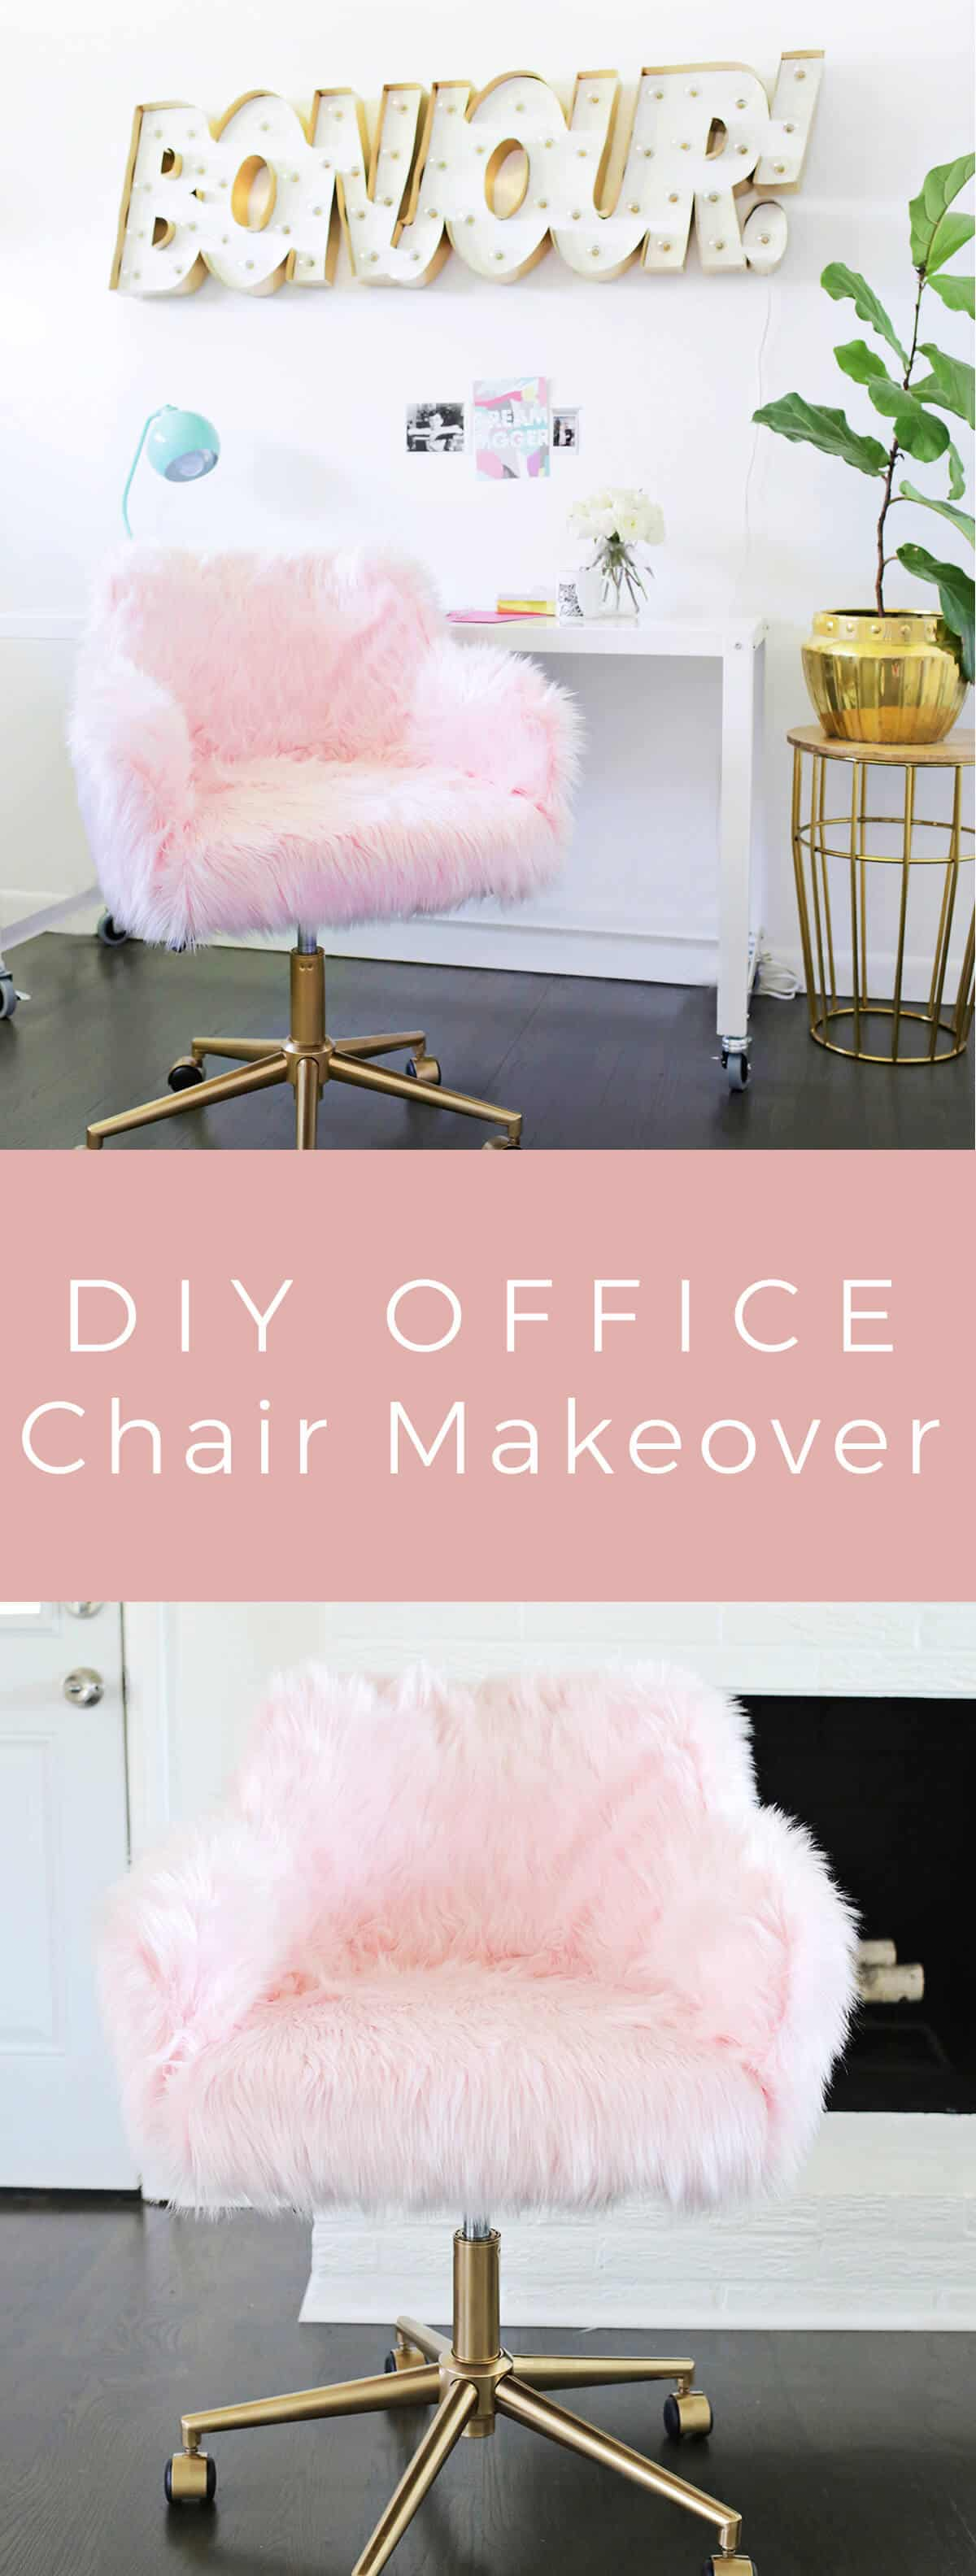 Image of: Project Restyle Office Chair Makeover A Beautiful Mess